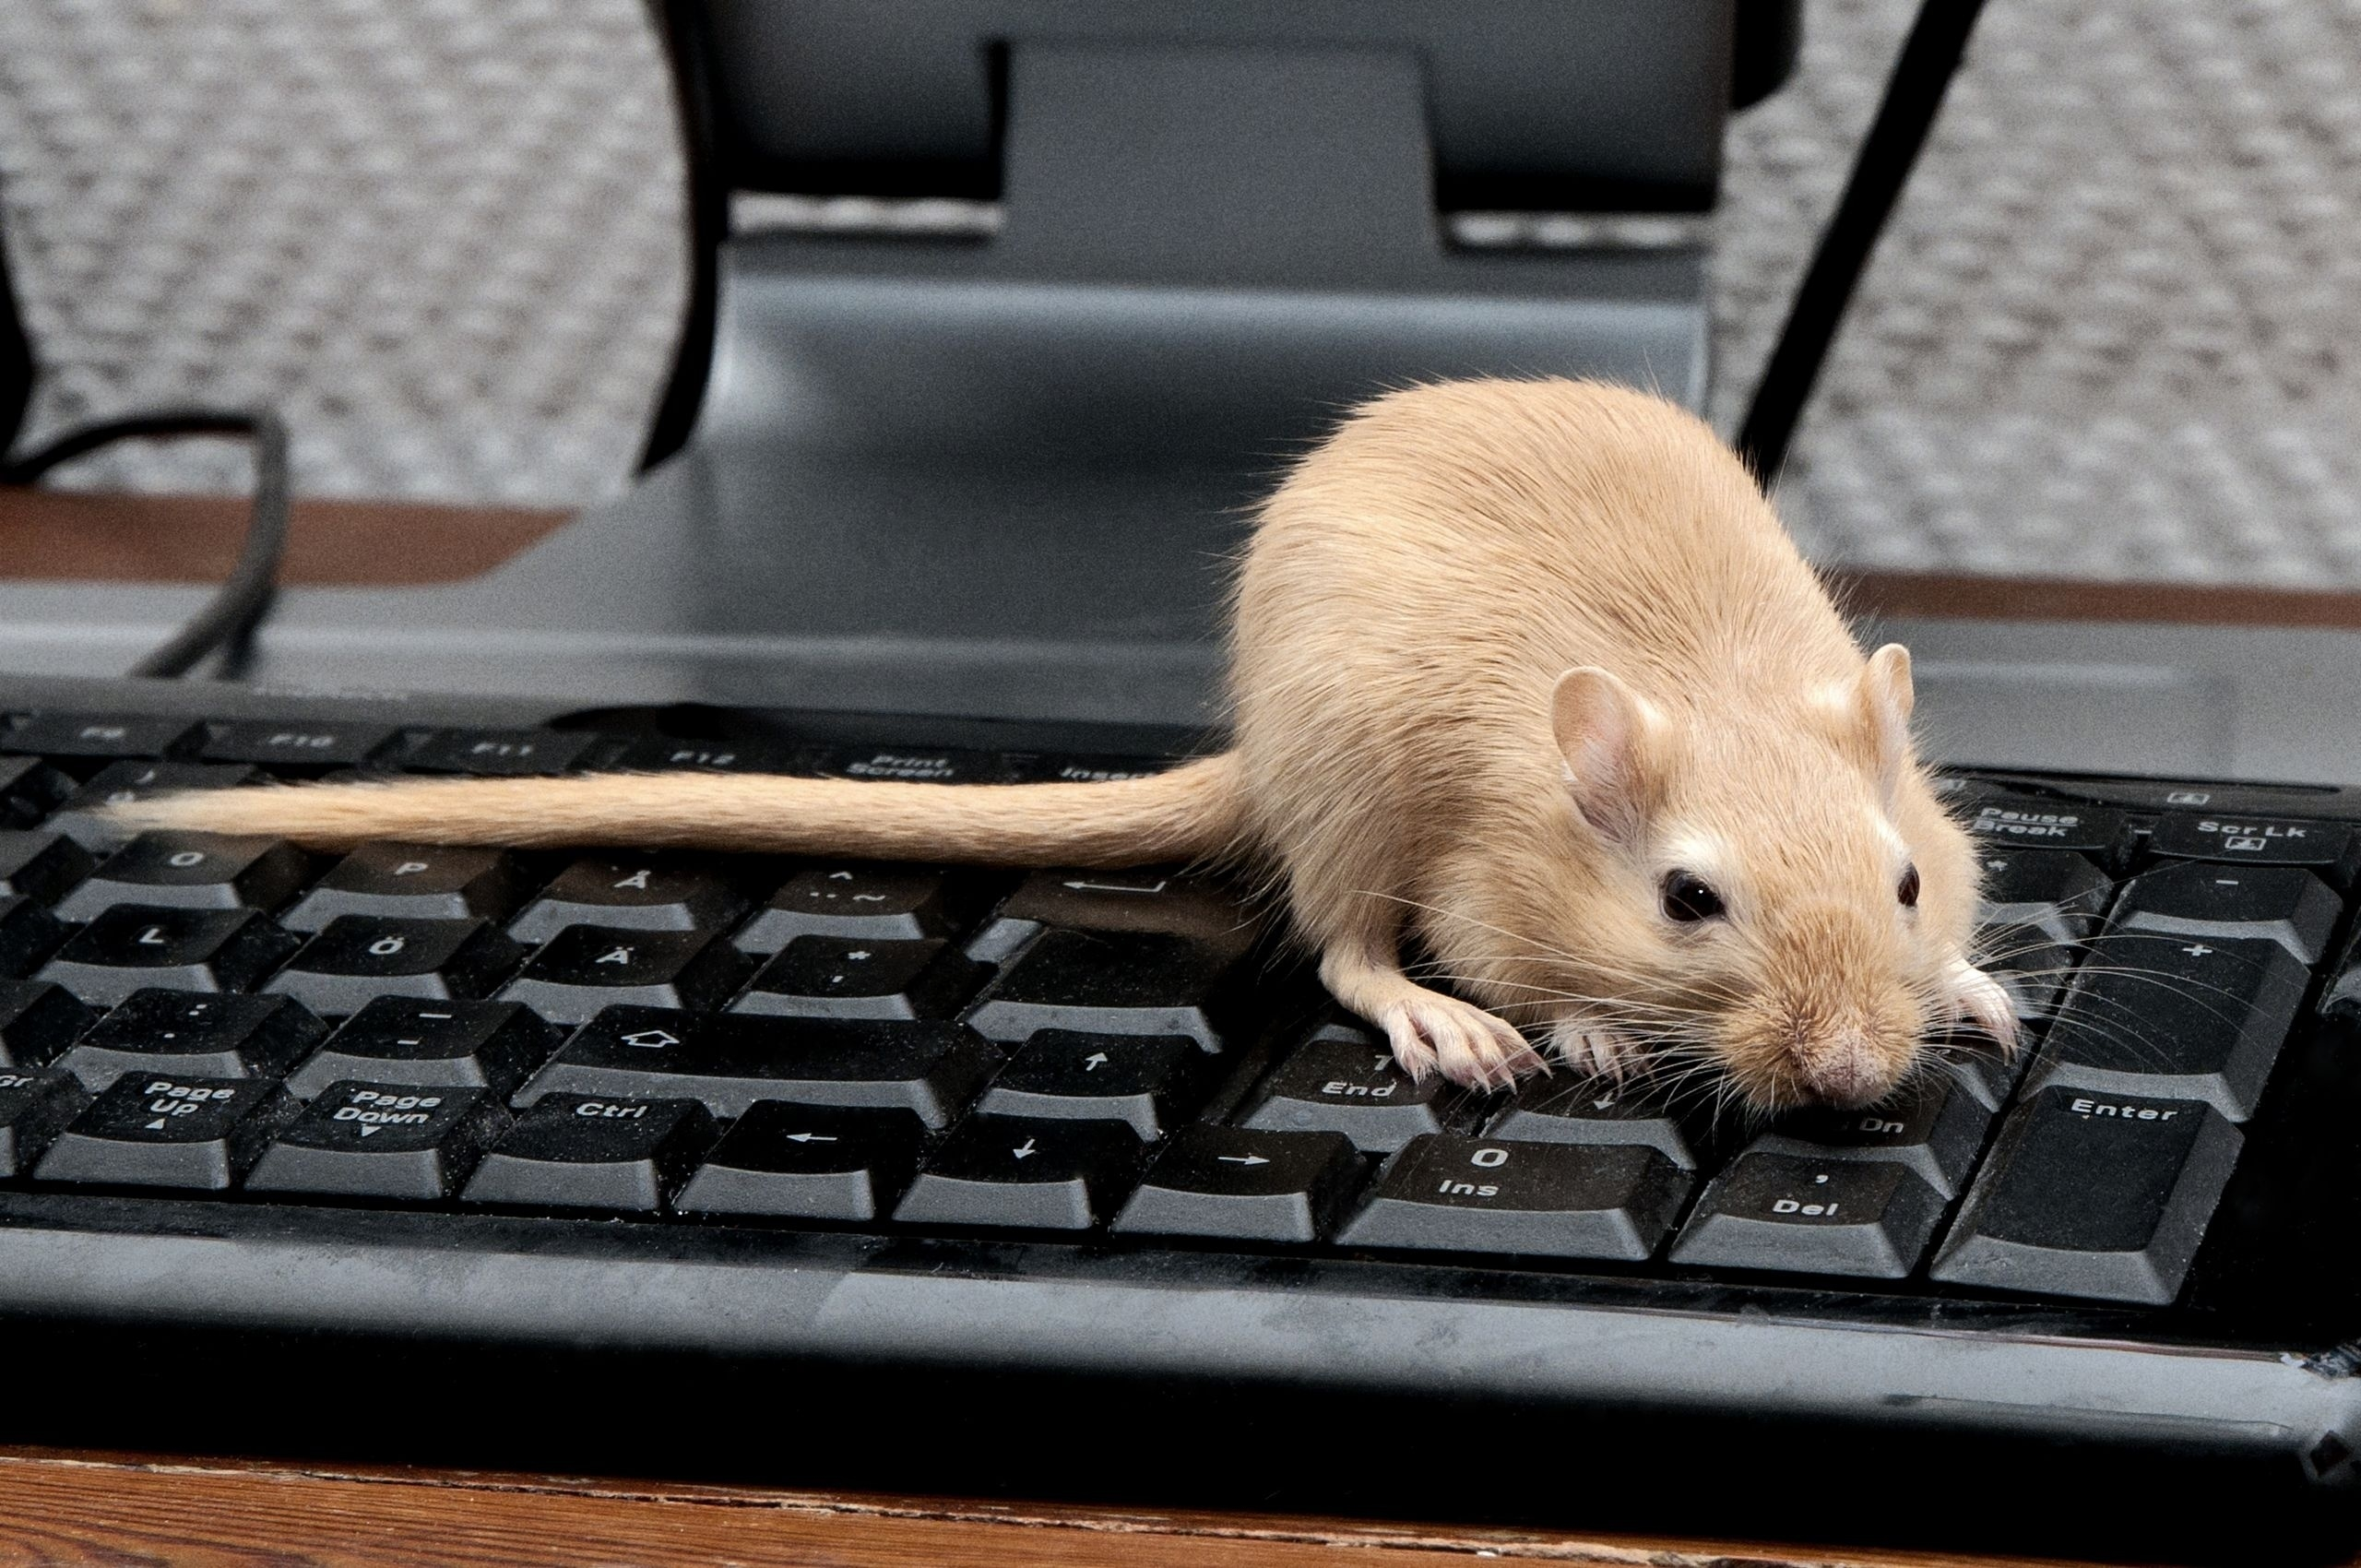 69430 download wallpaper Animals, Mouse, Rat, Keyboard, Climb, Rodent screensavers and pictures for free